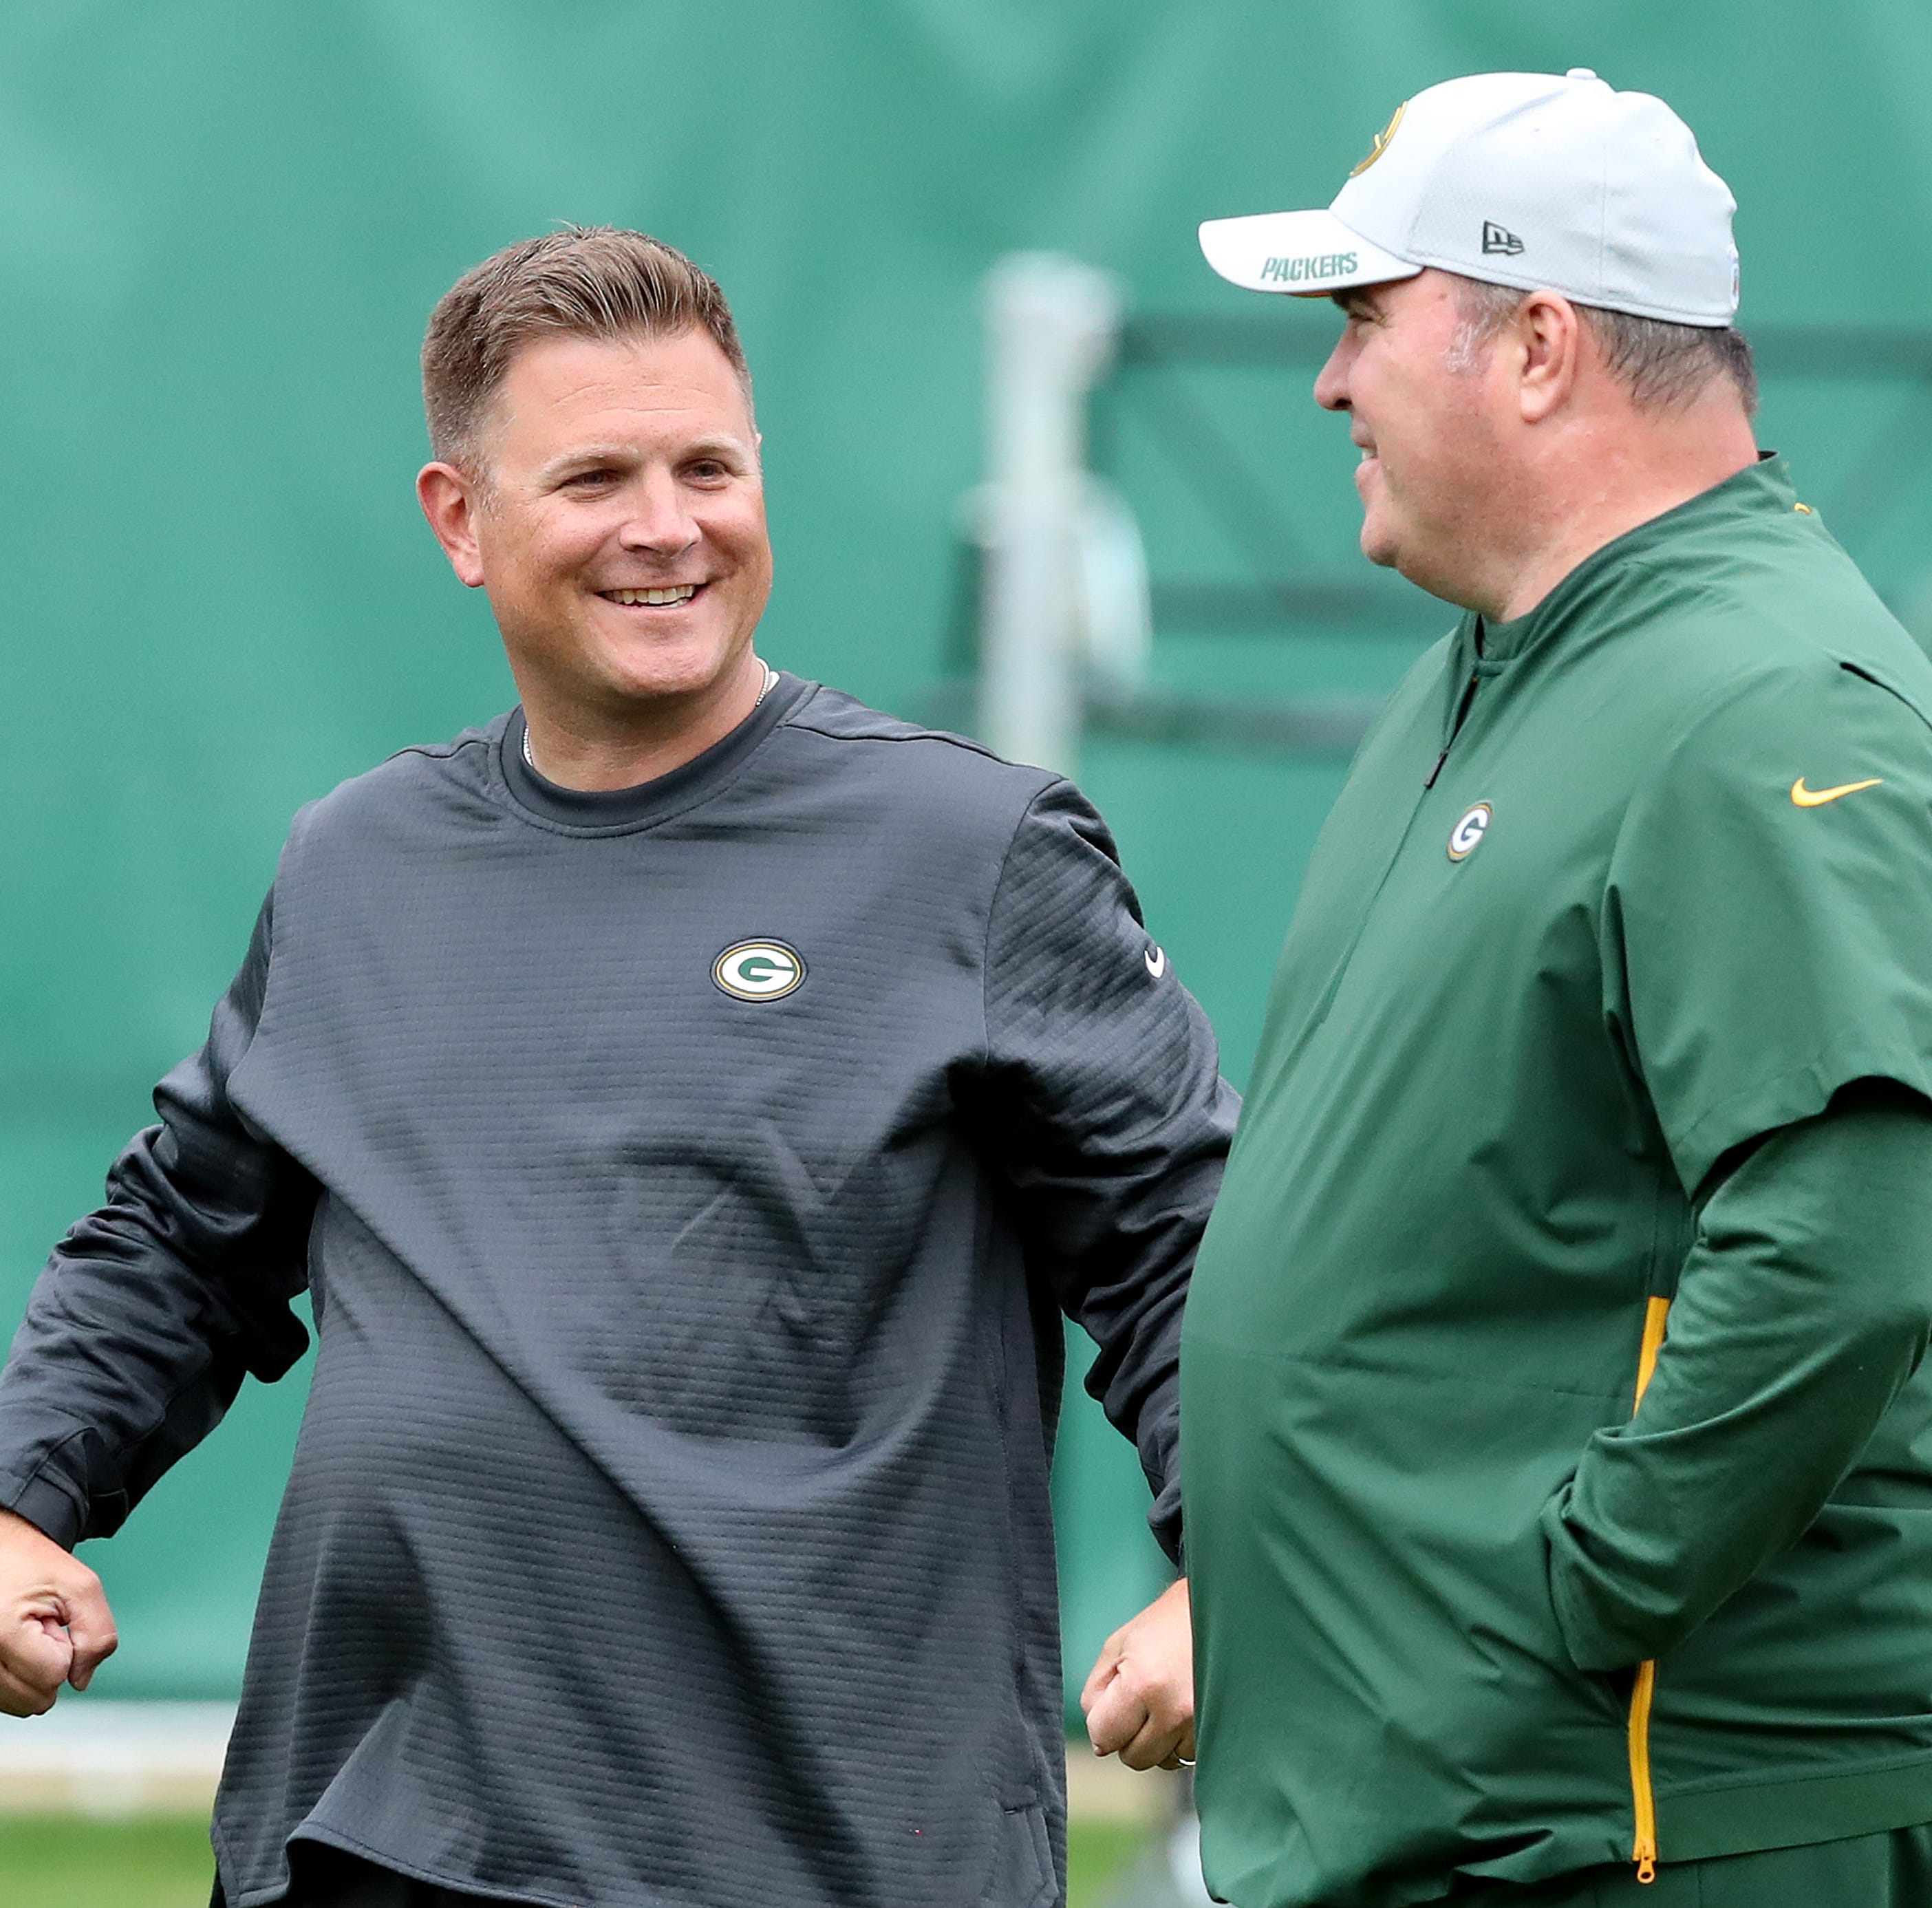 Dougherty: Hits and misses in Packers GM Brian Gutekunst's first free-agent moves